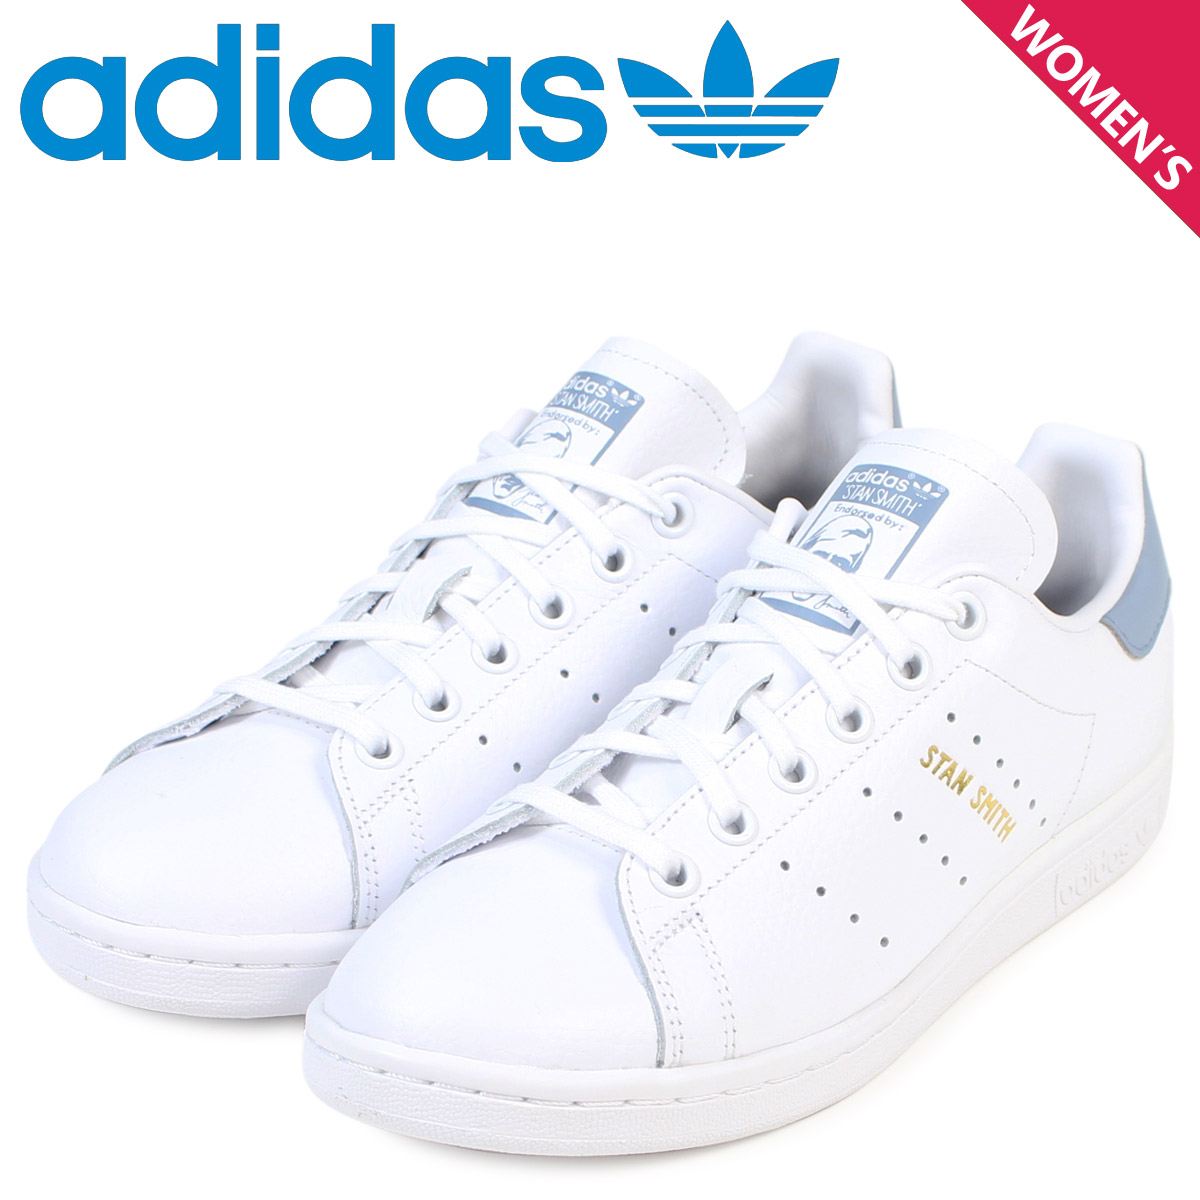 adidas originals Lady's Adidas Stan Smith sneakers STAN SMITH CP9810 shoes white [load planned Shinnyu load in reservation product 9/28 containing]